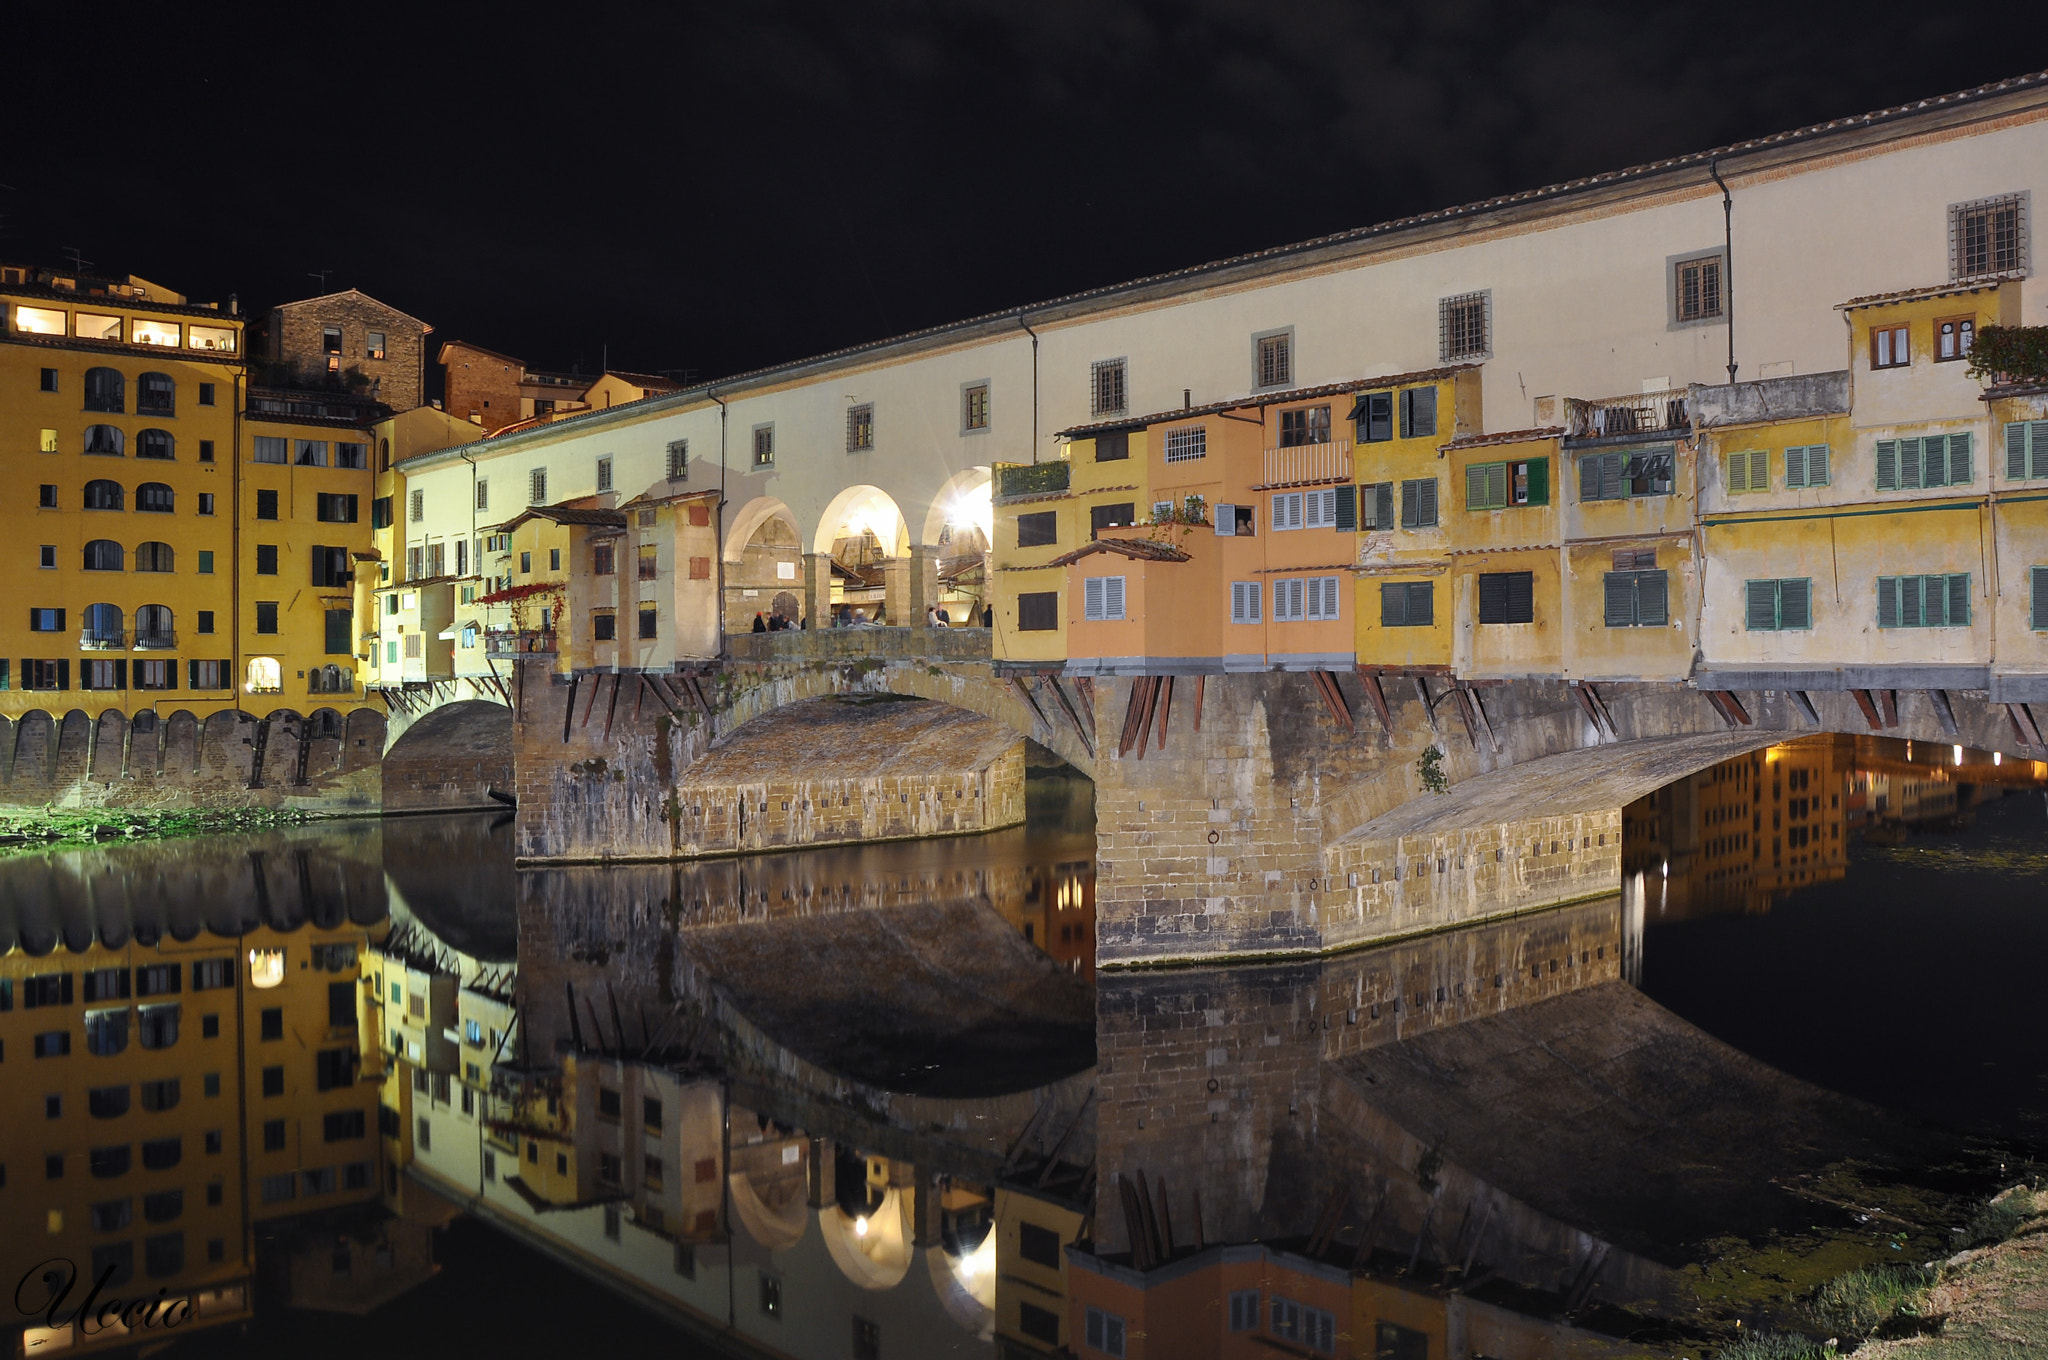 Photograph Reflection on Ponte Vecchio  by Maurizio Panuccio on 500px